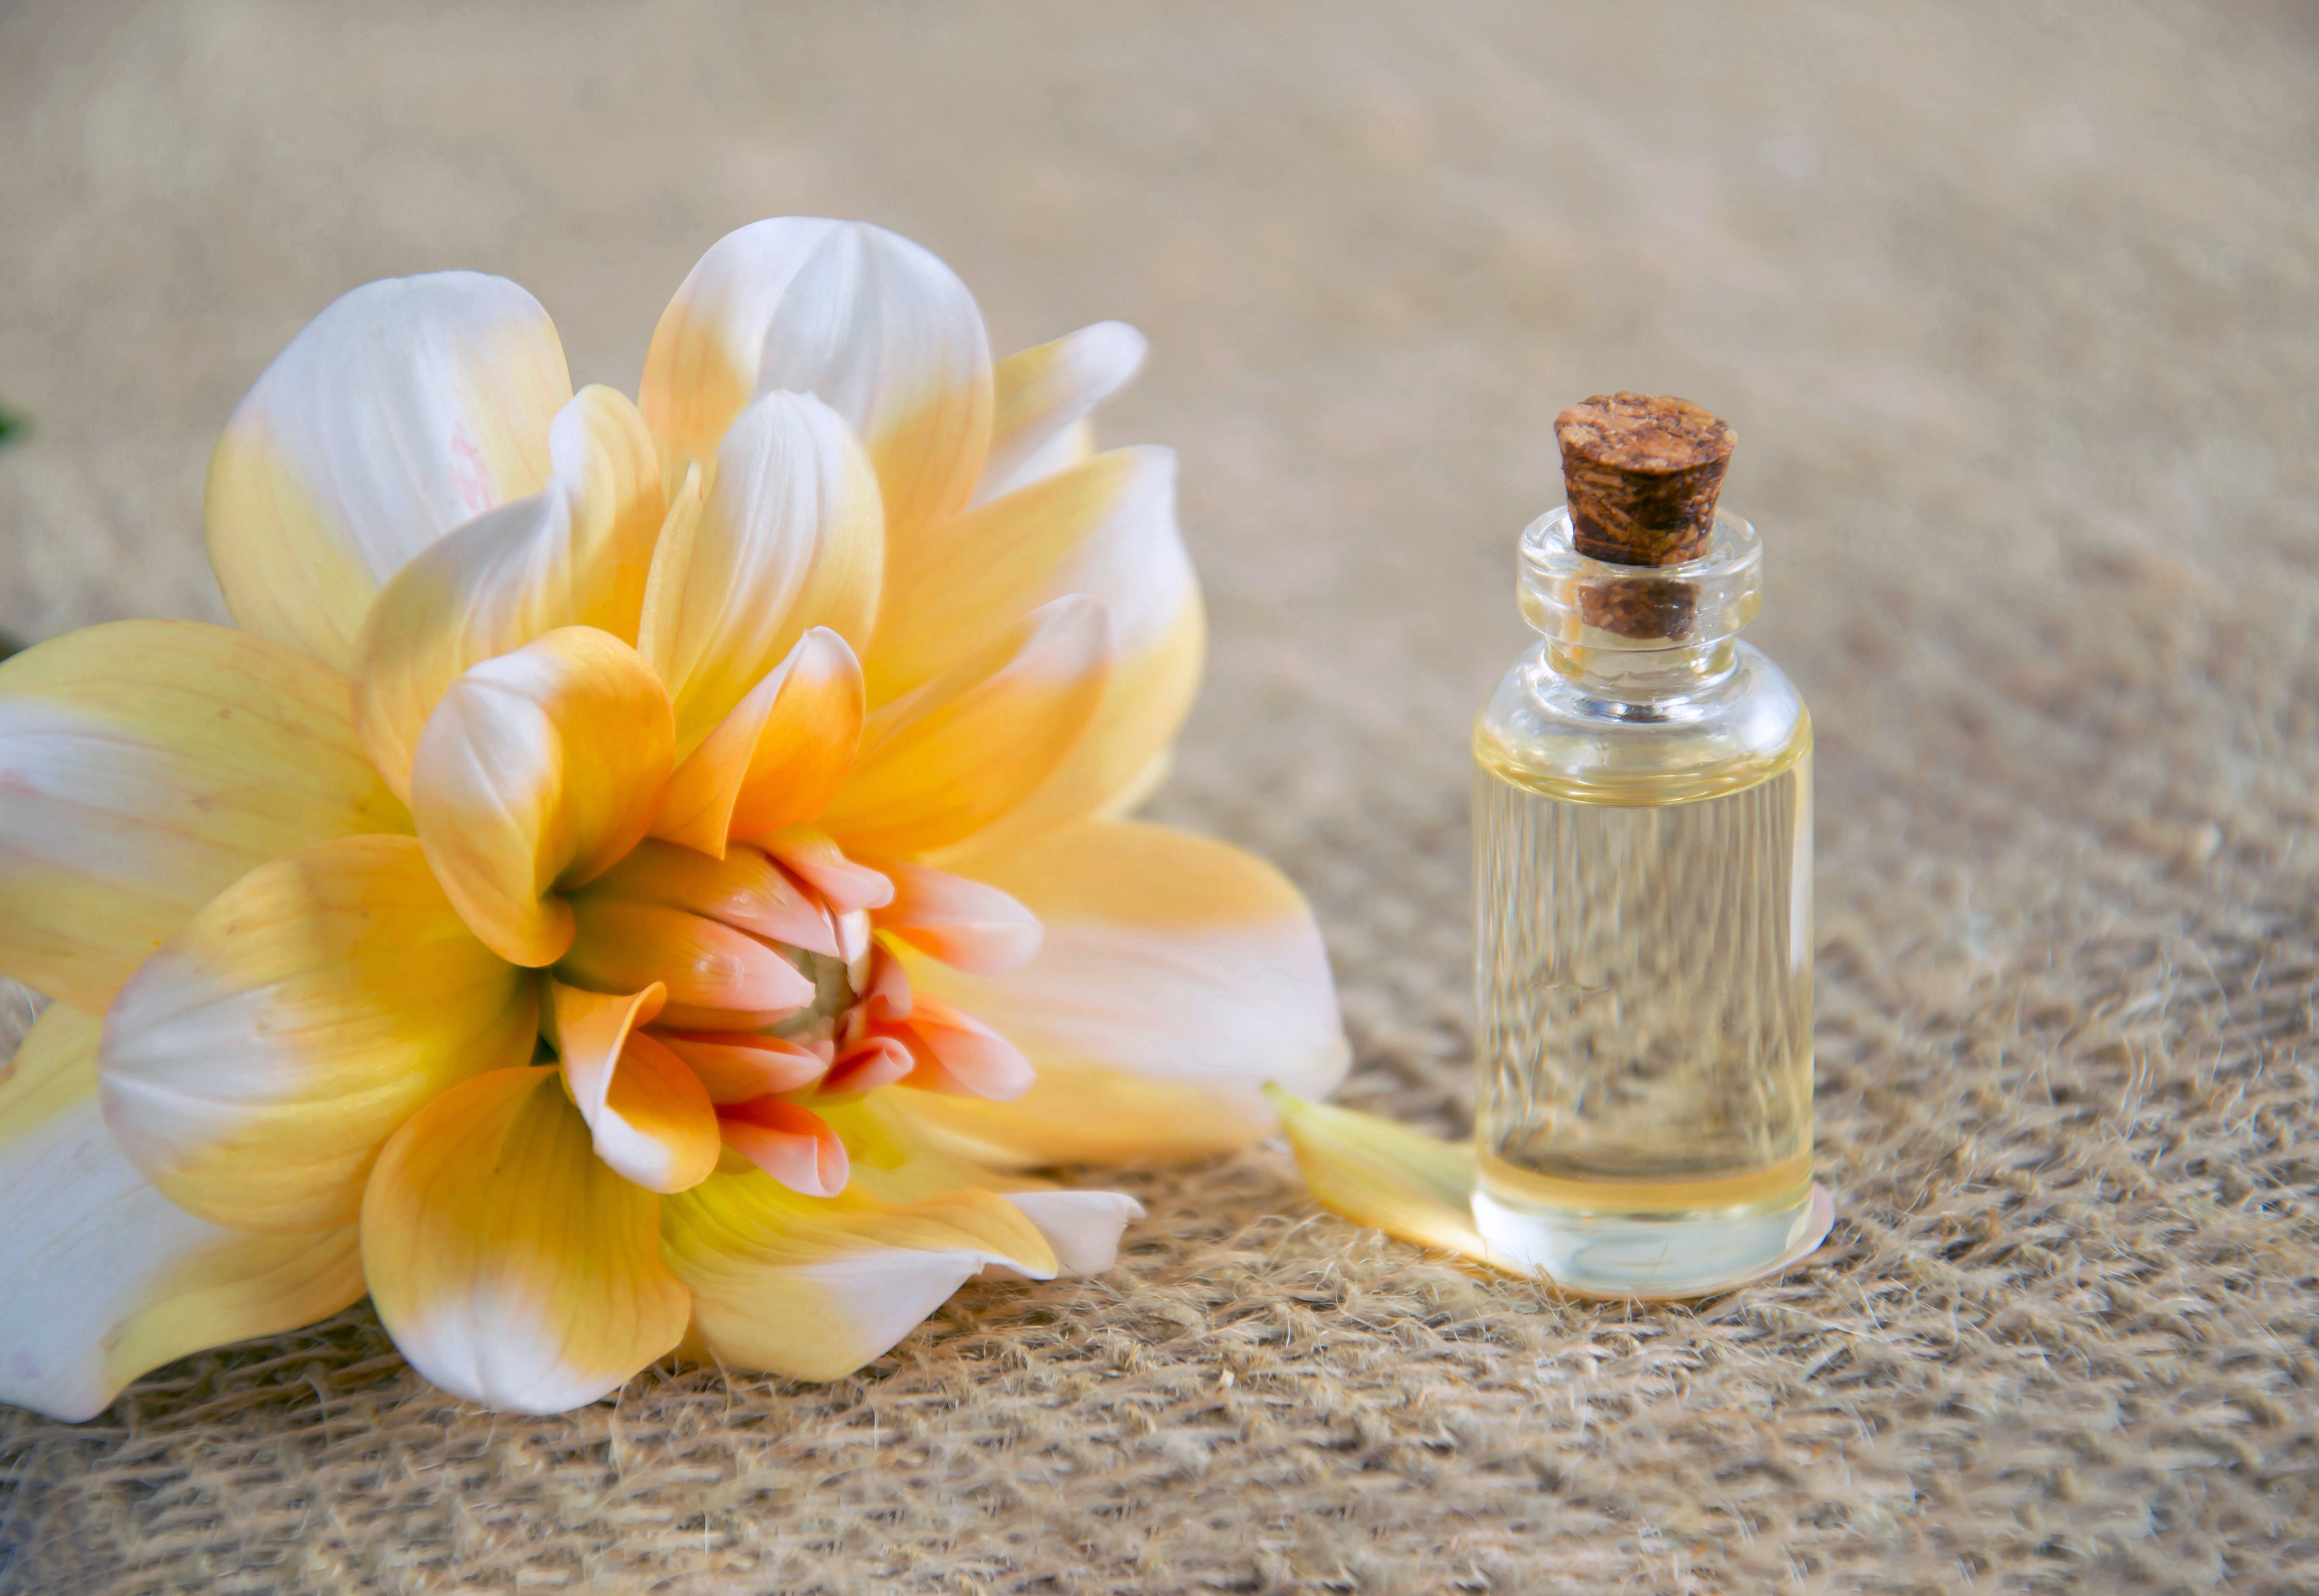 Close-Up Photo of White and Yellow Flower Near Glass Bottle